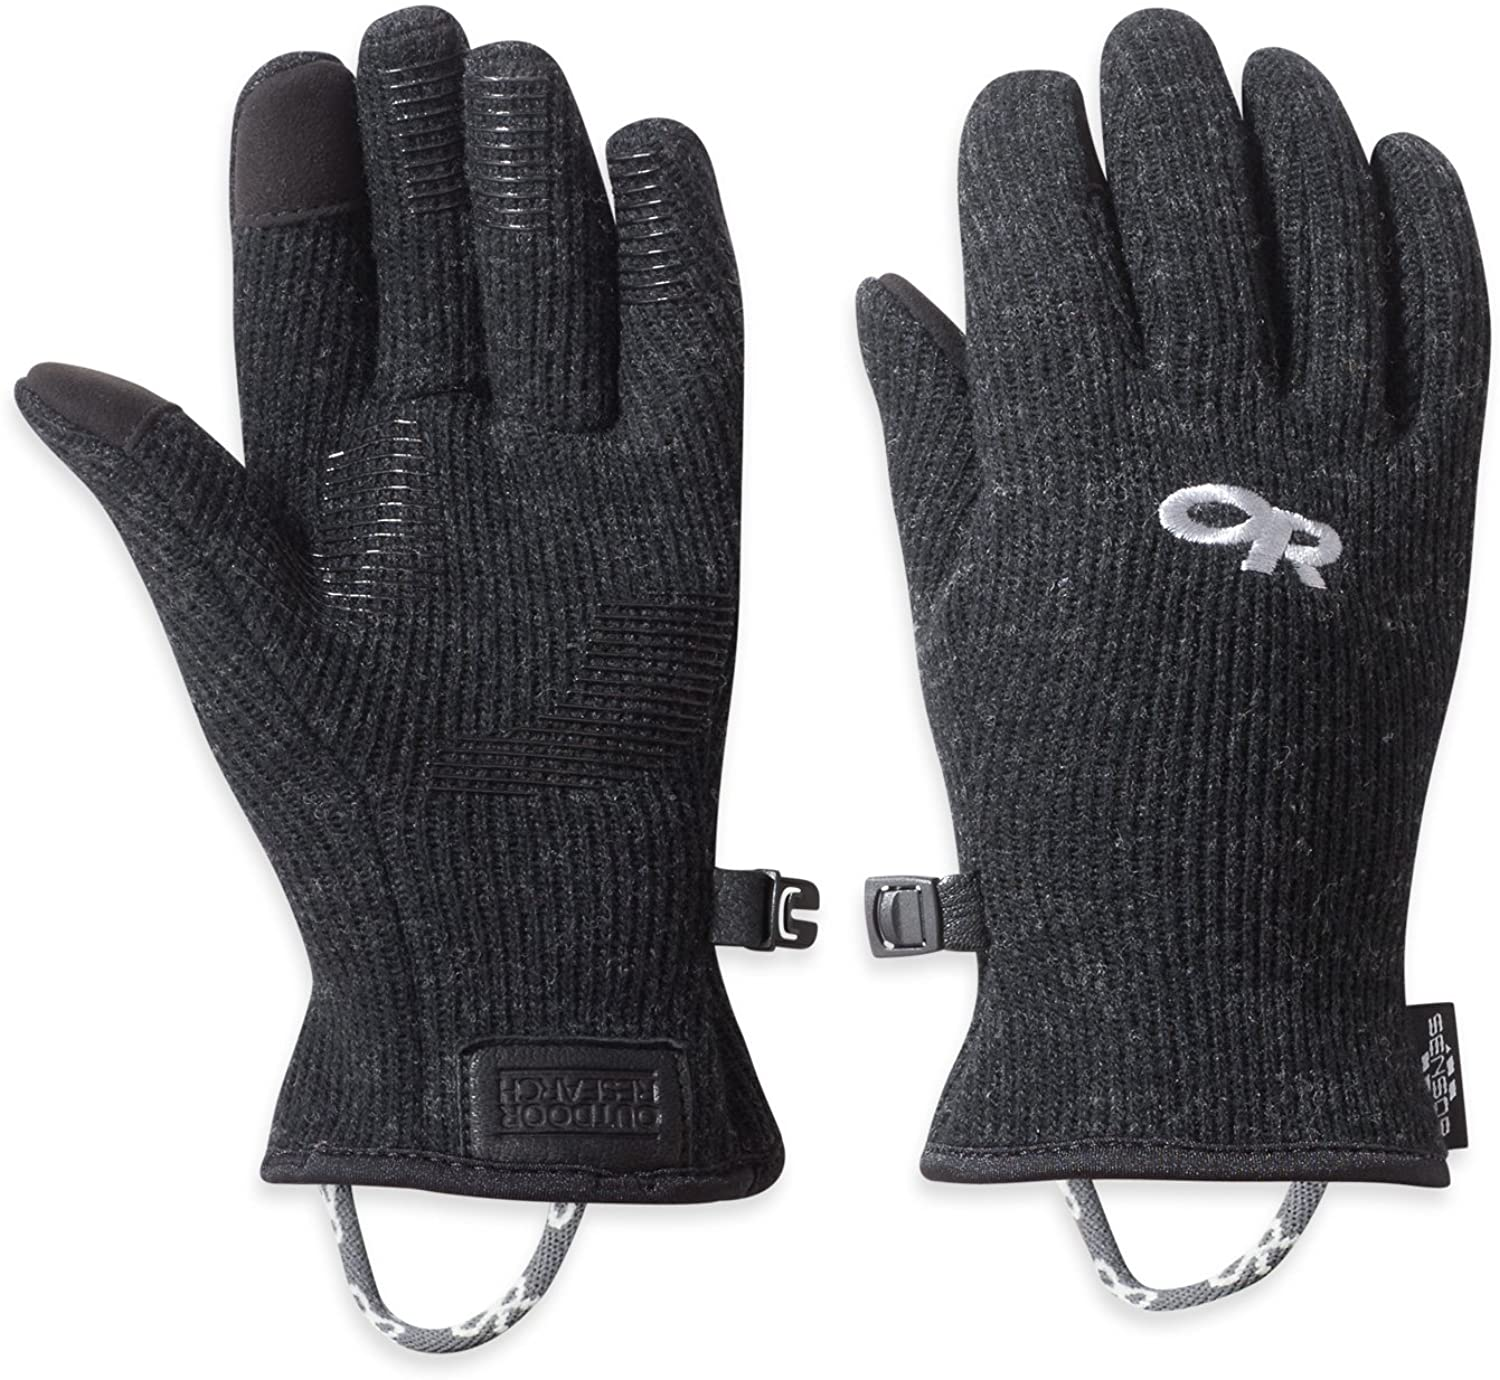 Outdoor Research Women's Flurry Sensor Gloves - Wicking, Breathable, Lightweight and Touchscreen Compatible